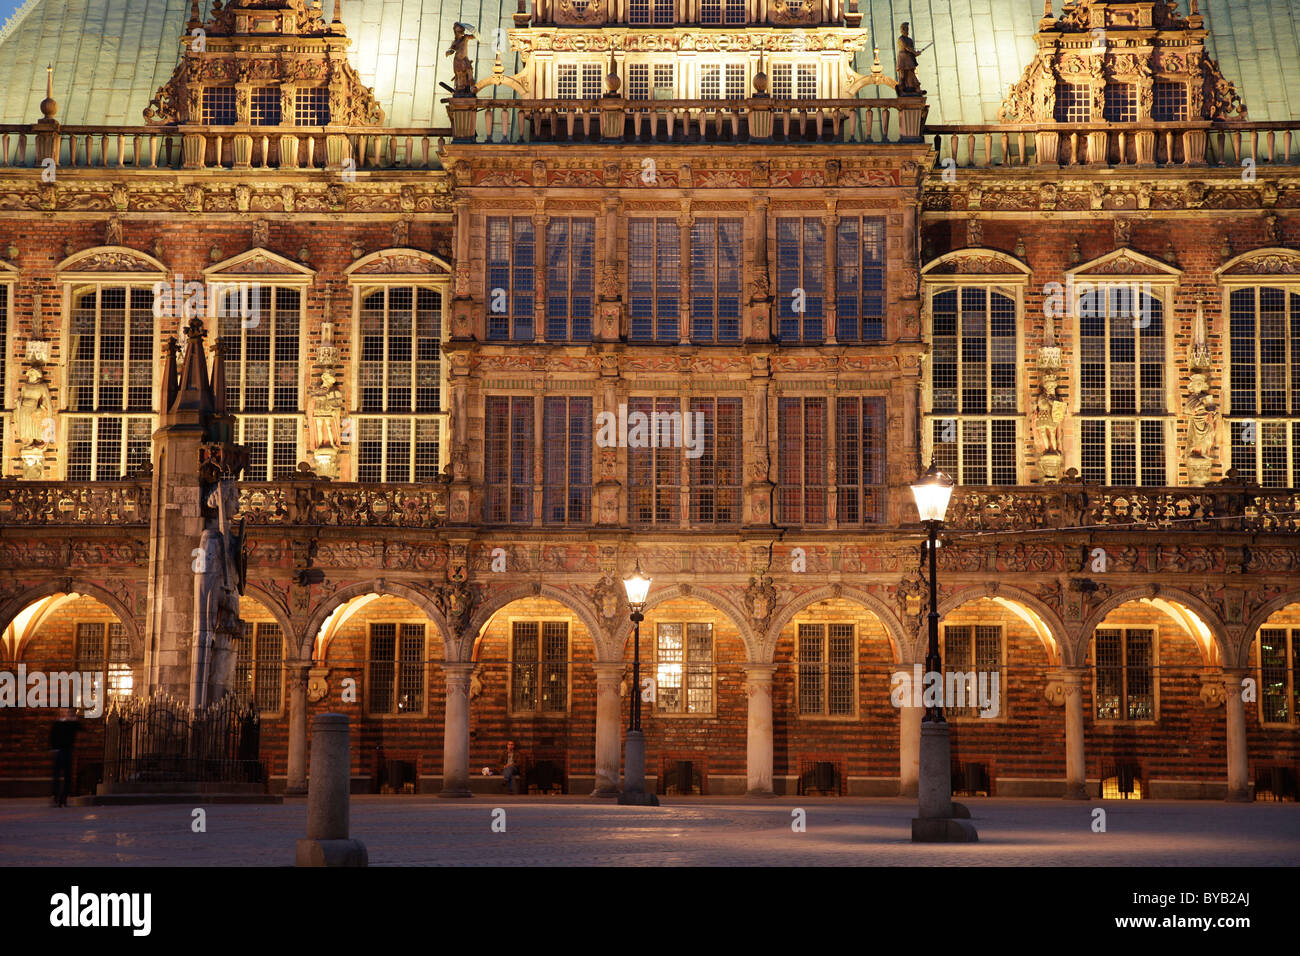 The Bremen Town Hall illuminated at night, Free Hanseatic City of Bremen, Germany, Europe - Stock Image